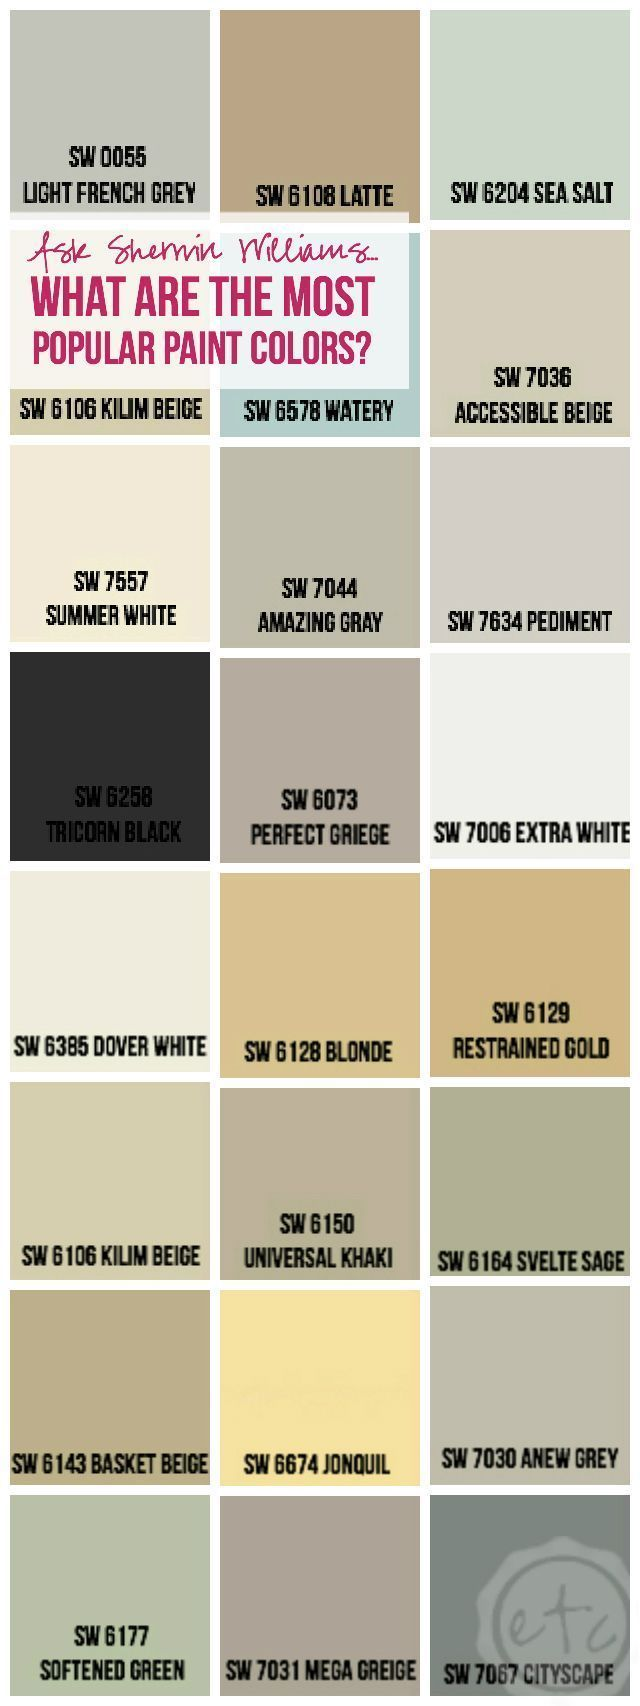 best 25+ accessible beige ideas on pinterest | beige paint colors